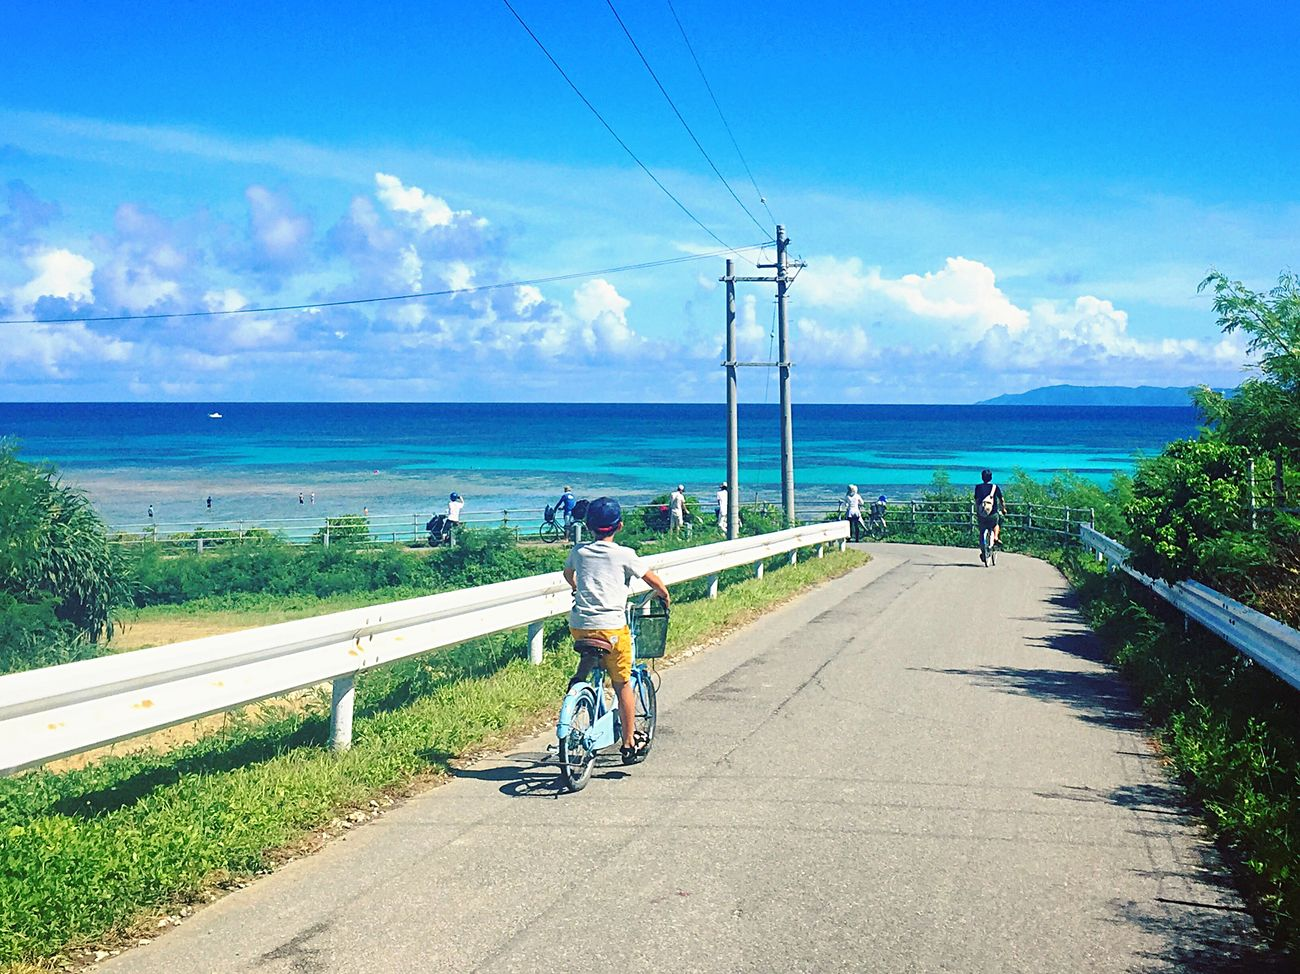 波照間島 波照間 Hateruma Haterumajima Hateruma Blue Sloping Road Downhill Blue Sky Bluesky Sea Sky Clouds Bluesea Blue Sea Bycicles Yaeyama Okinawa BlueGradation